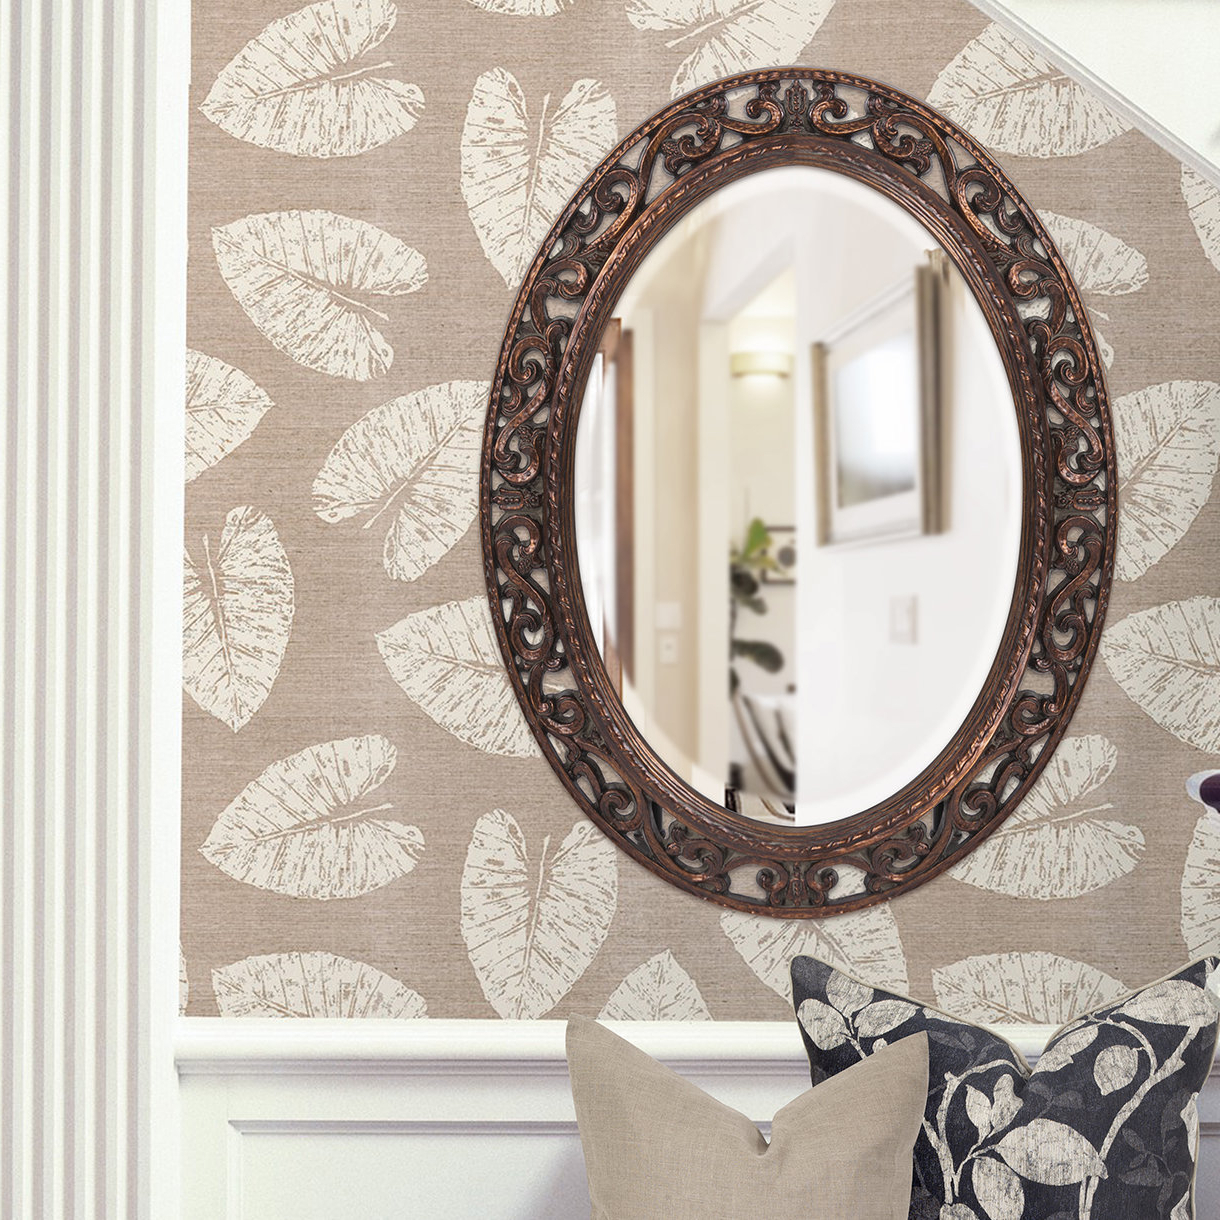 Burnes Oval Traditional Wall Mirrors With Trendy Oval Antique Bronze Wall Mirror (View 11 of 20)